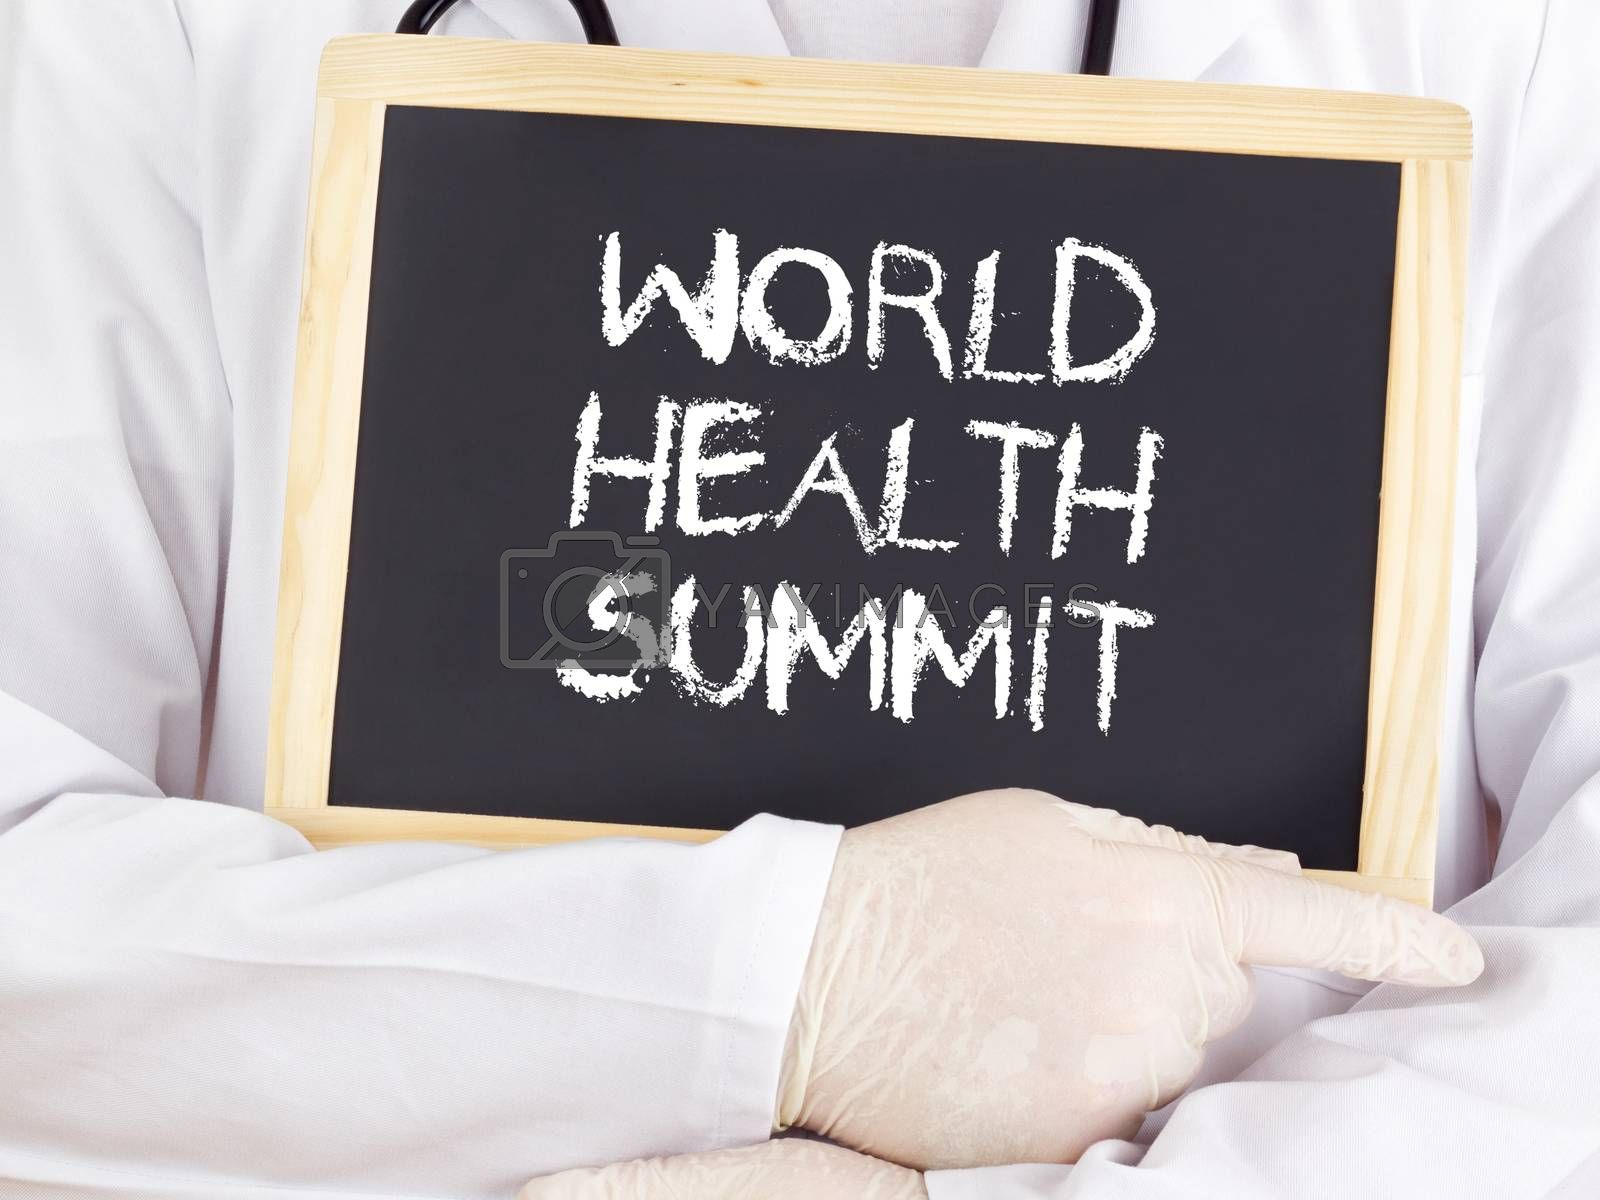 Royalty free image of Doctor shows information: World Health Summit by gwolters